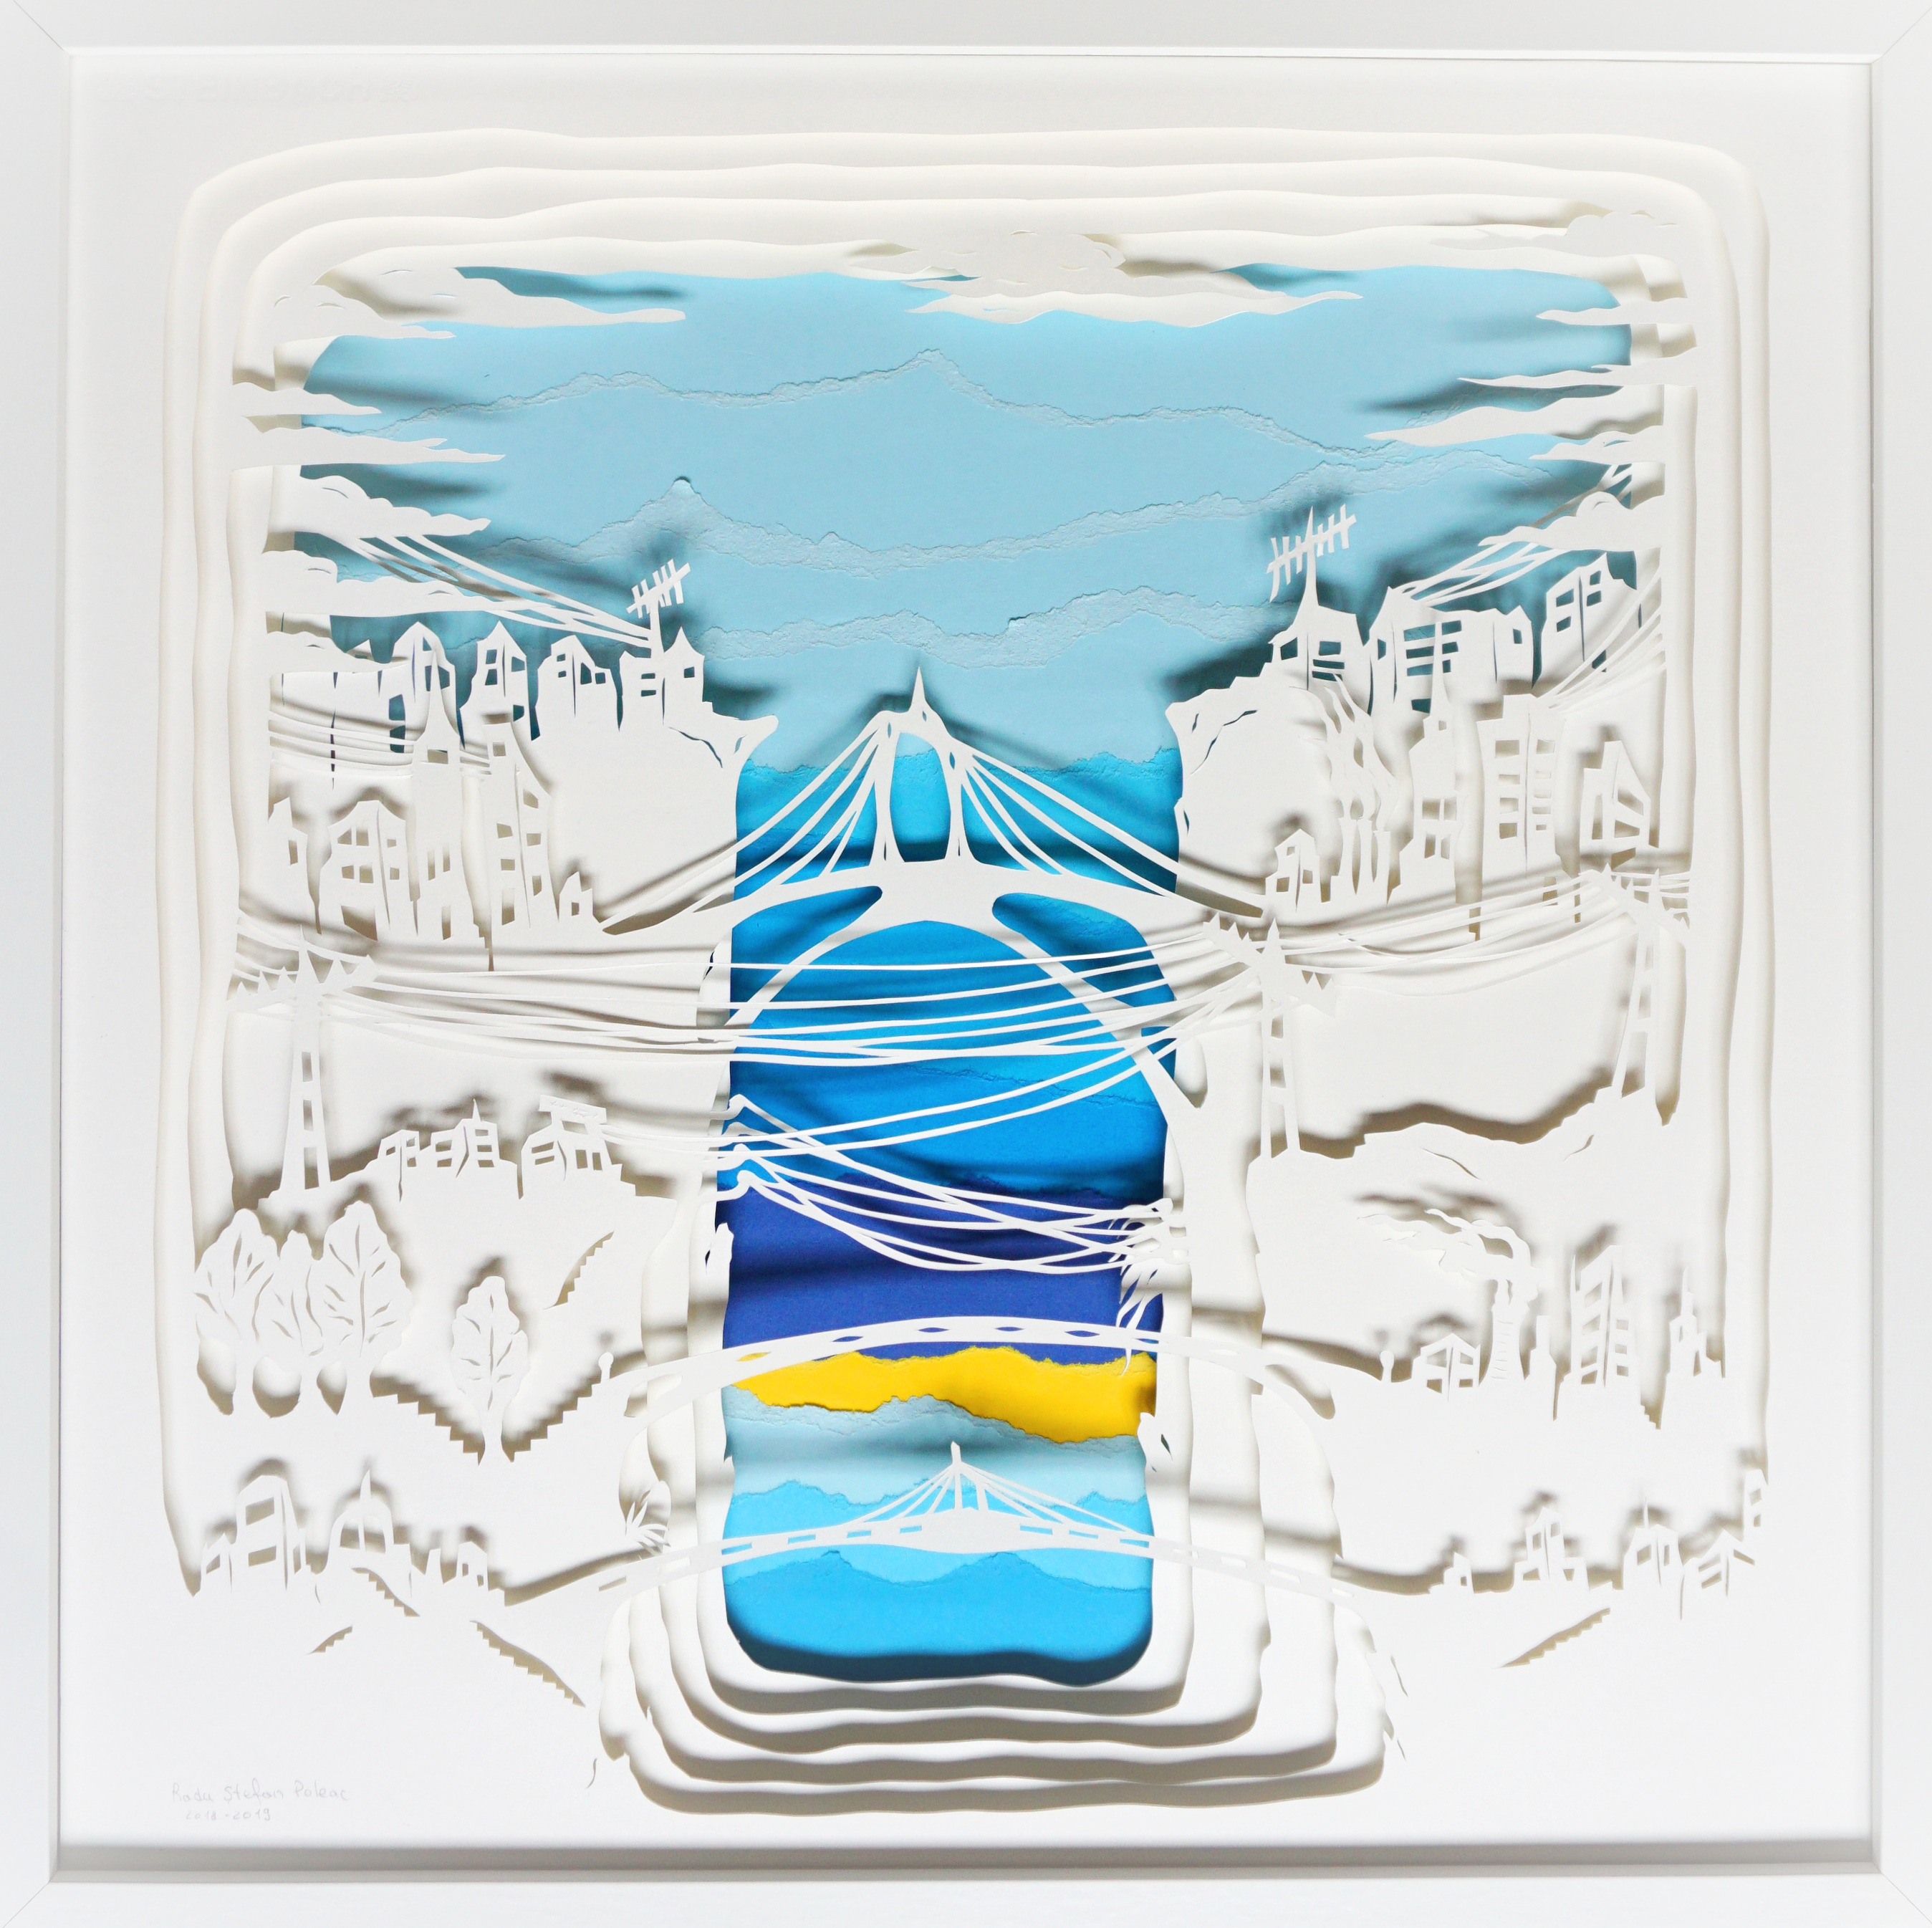 Ponts, Cut out 3D -Papercut, light box,